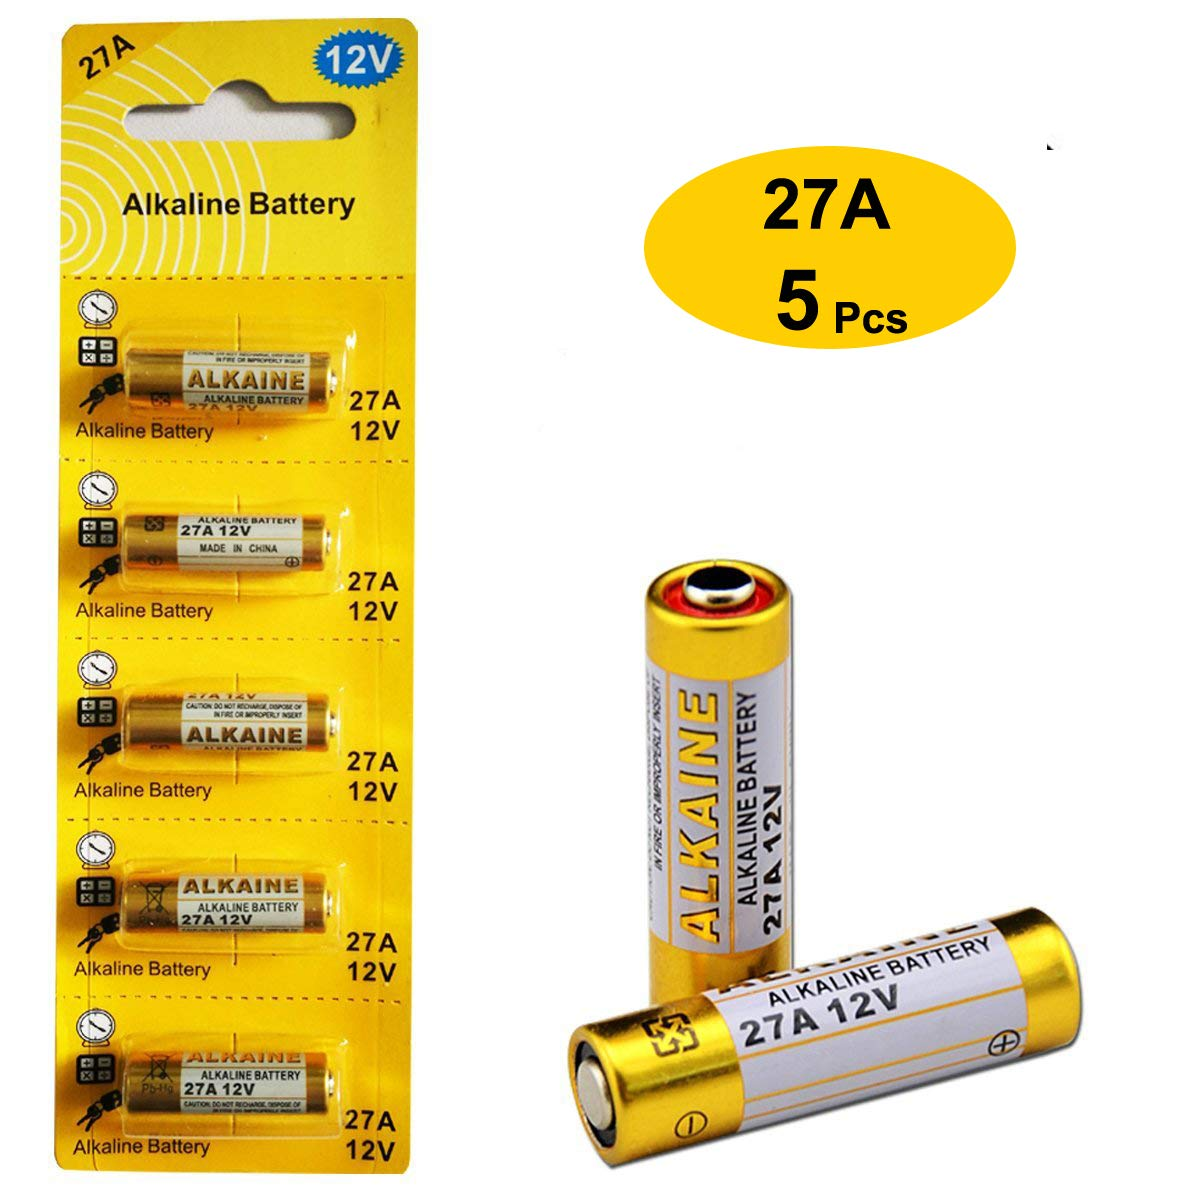 27A 12V Alkaline Battery (5-Pack) LiCB LW-27A-5